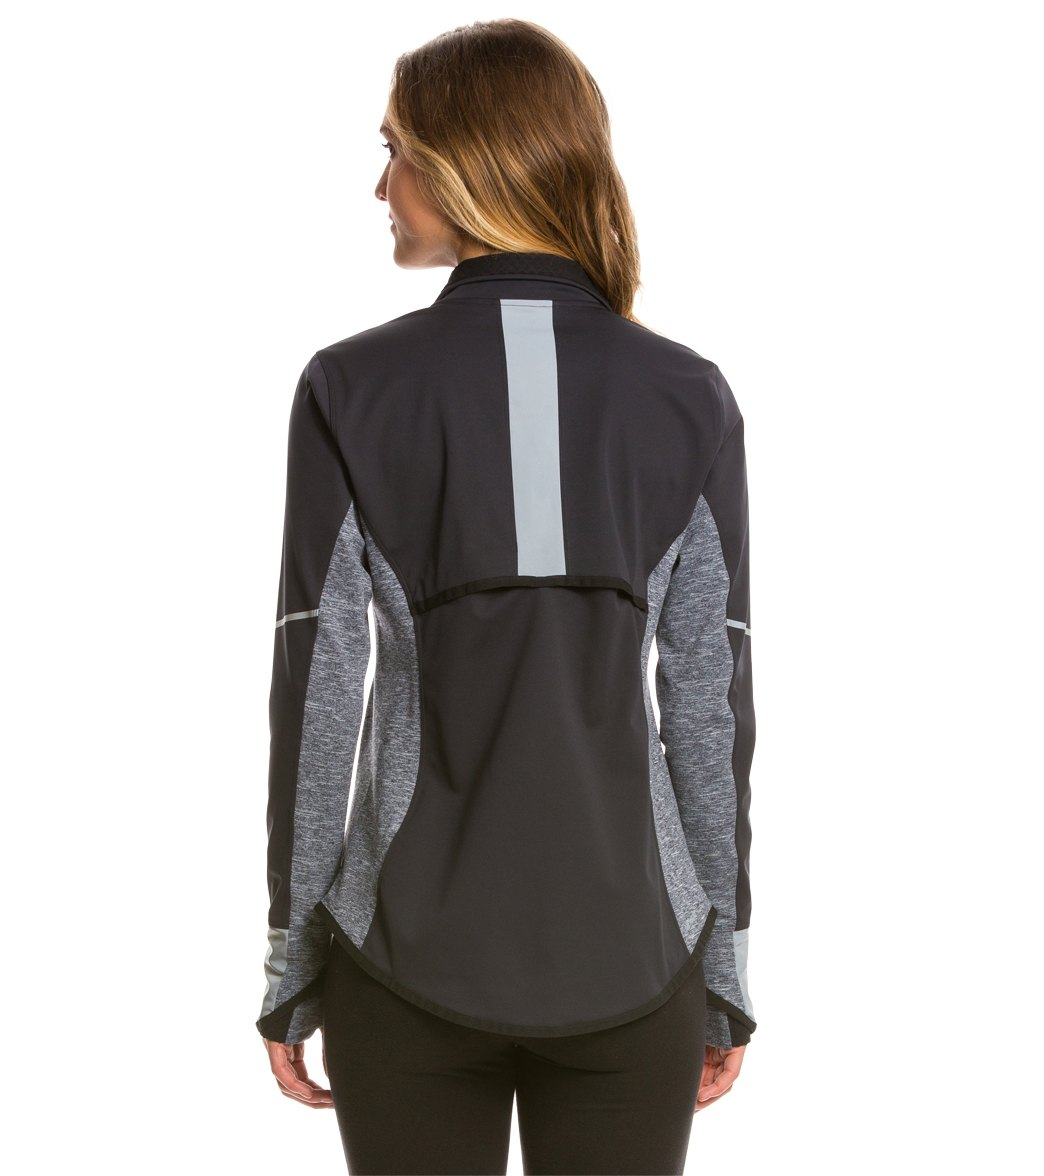 29d2393350dc0 New Balance Women's Windblocker Jacket at SwimOutlet.com - Free Shipping